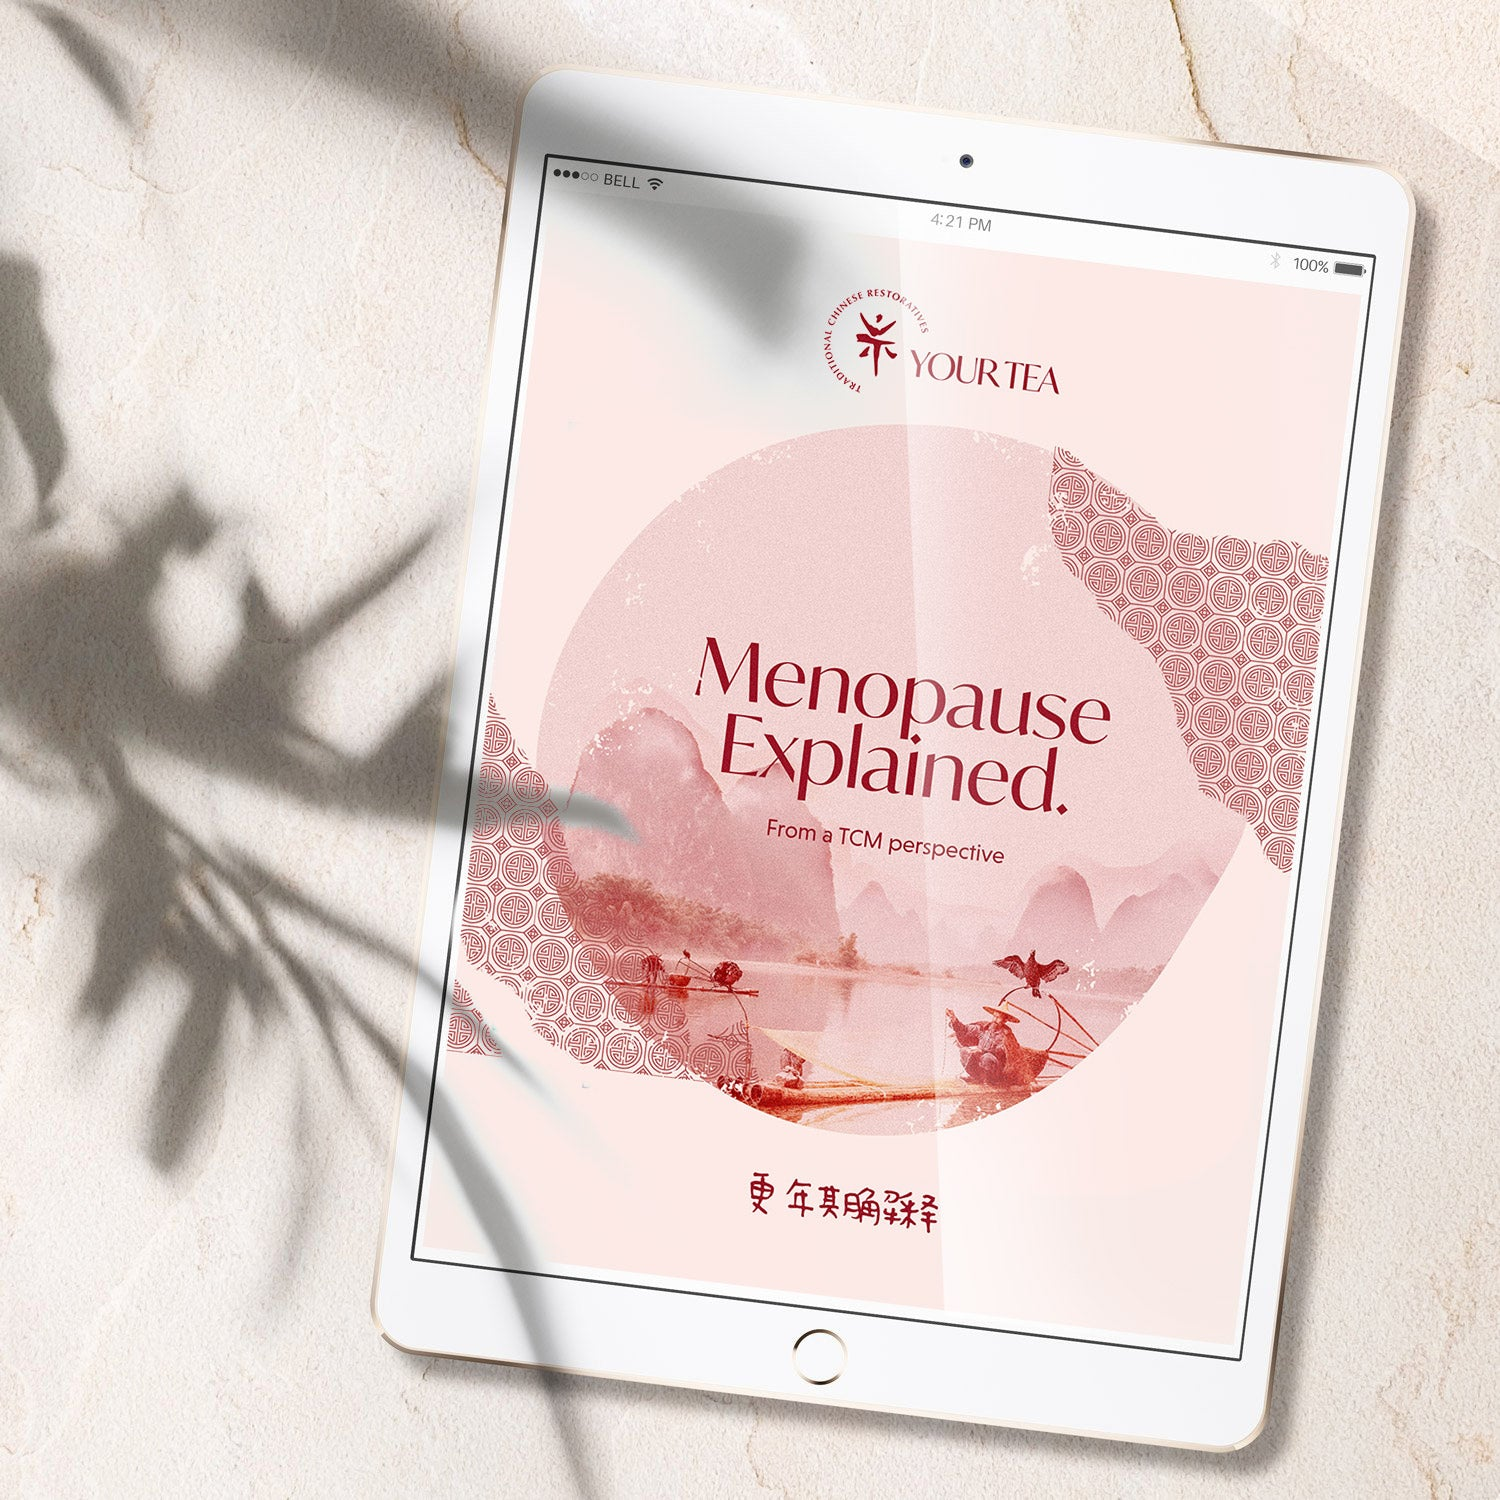 E-Book: Menopause explained from a TCM perspective.